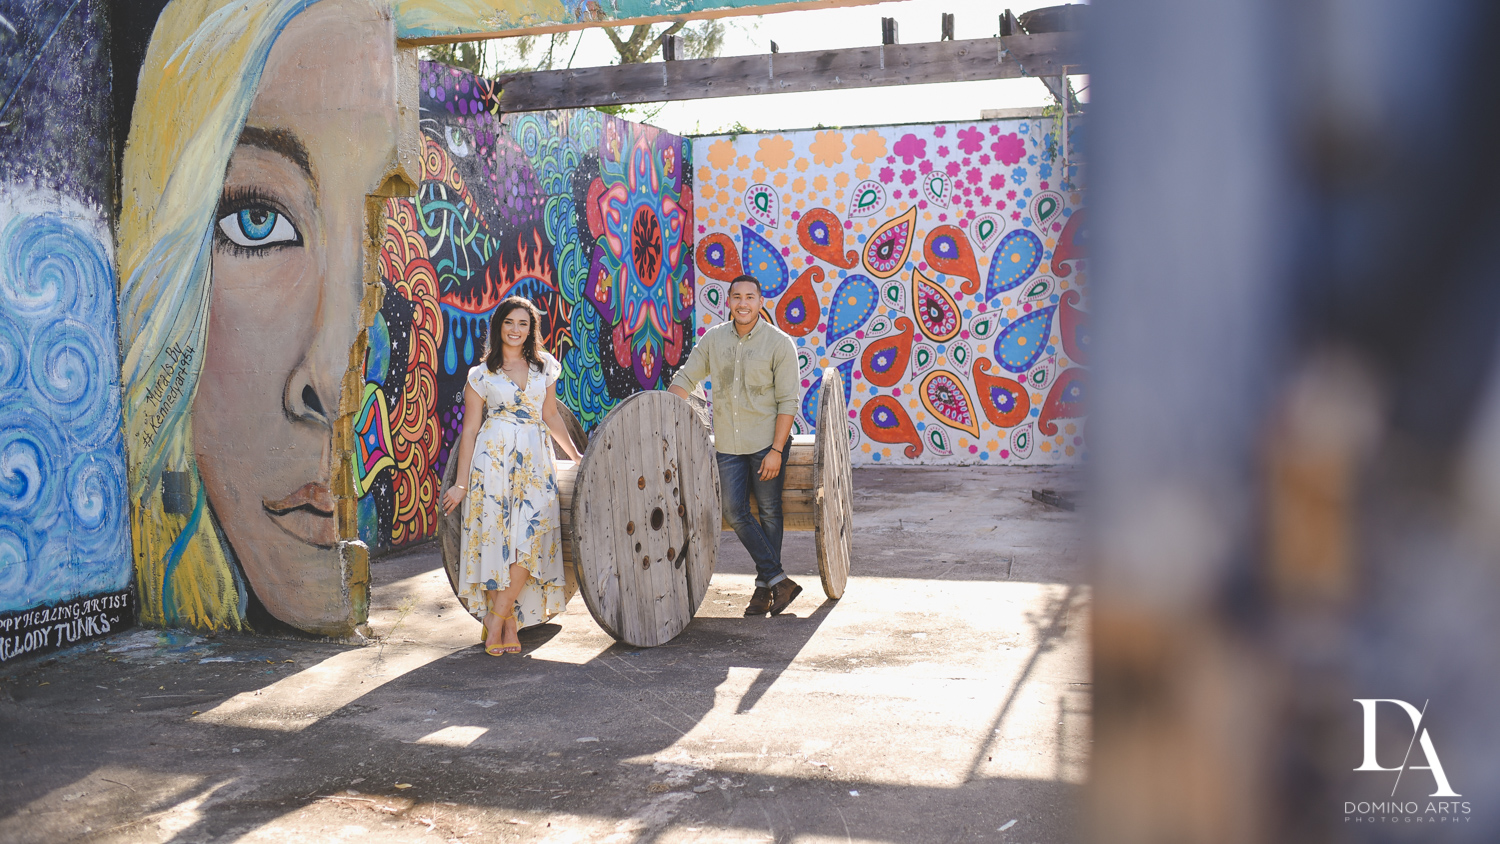 miami Romantic Engagement Session at Graffiti Walls by Domino Arts Photography